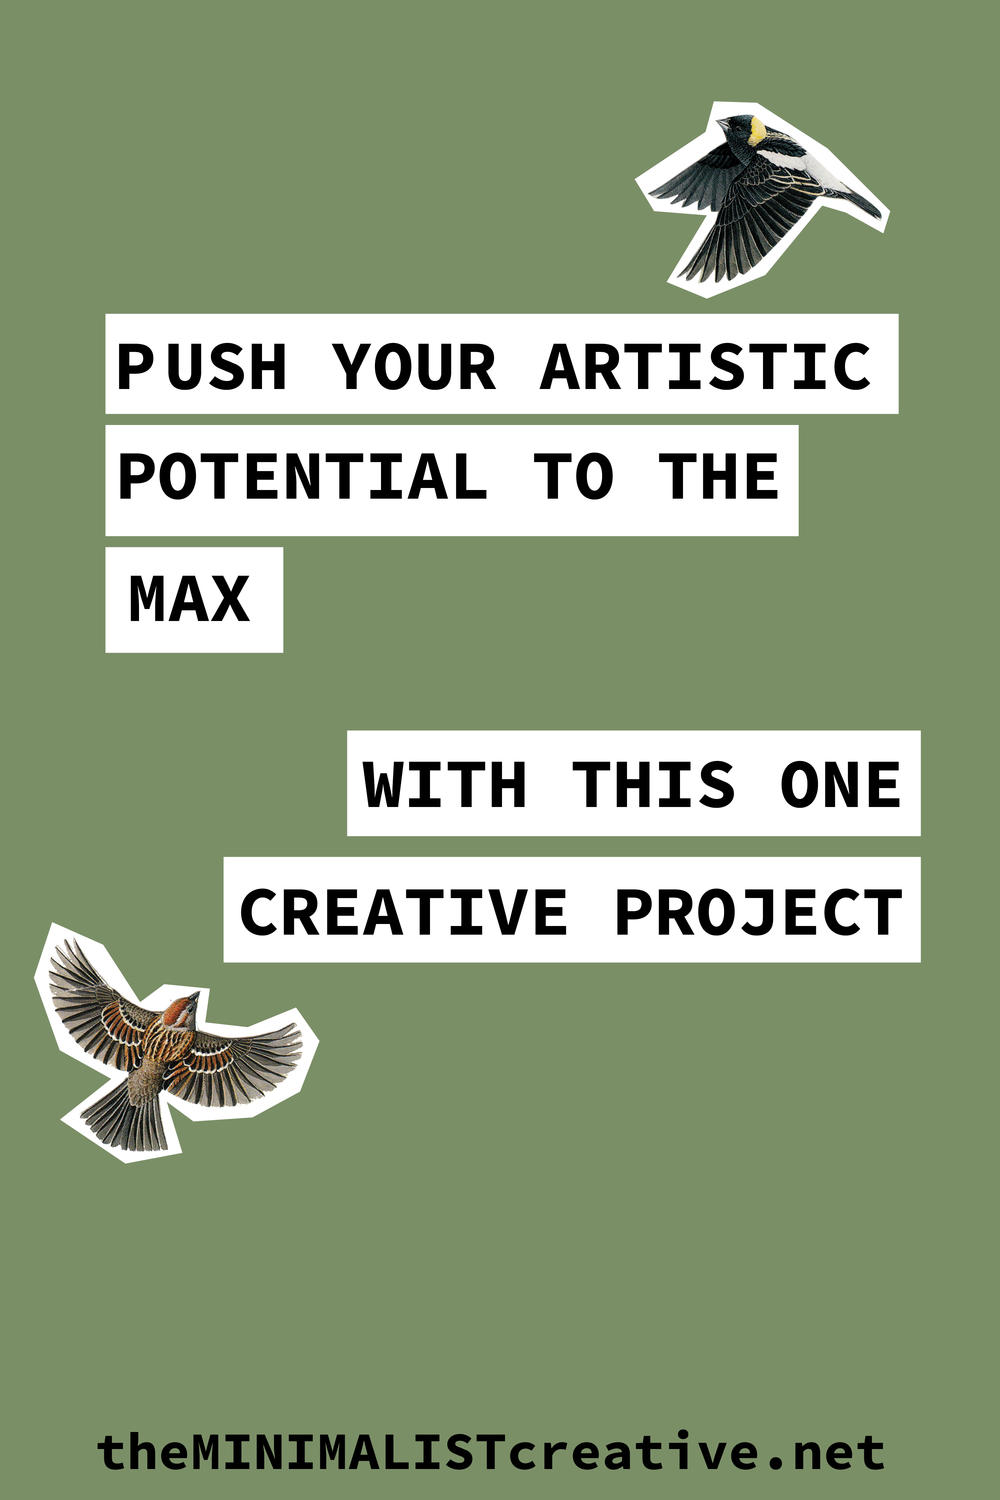 Push Your Artistic Potential to the Max with this One Creative Project